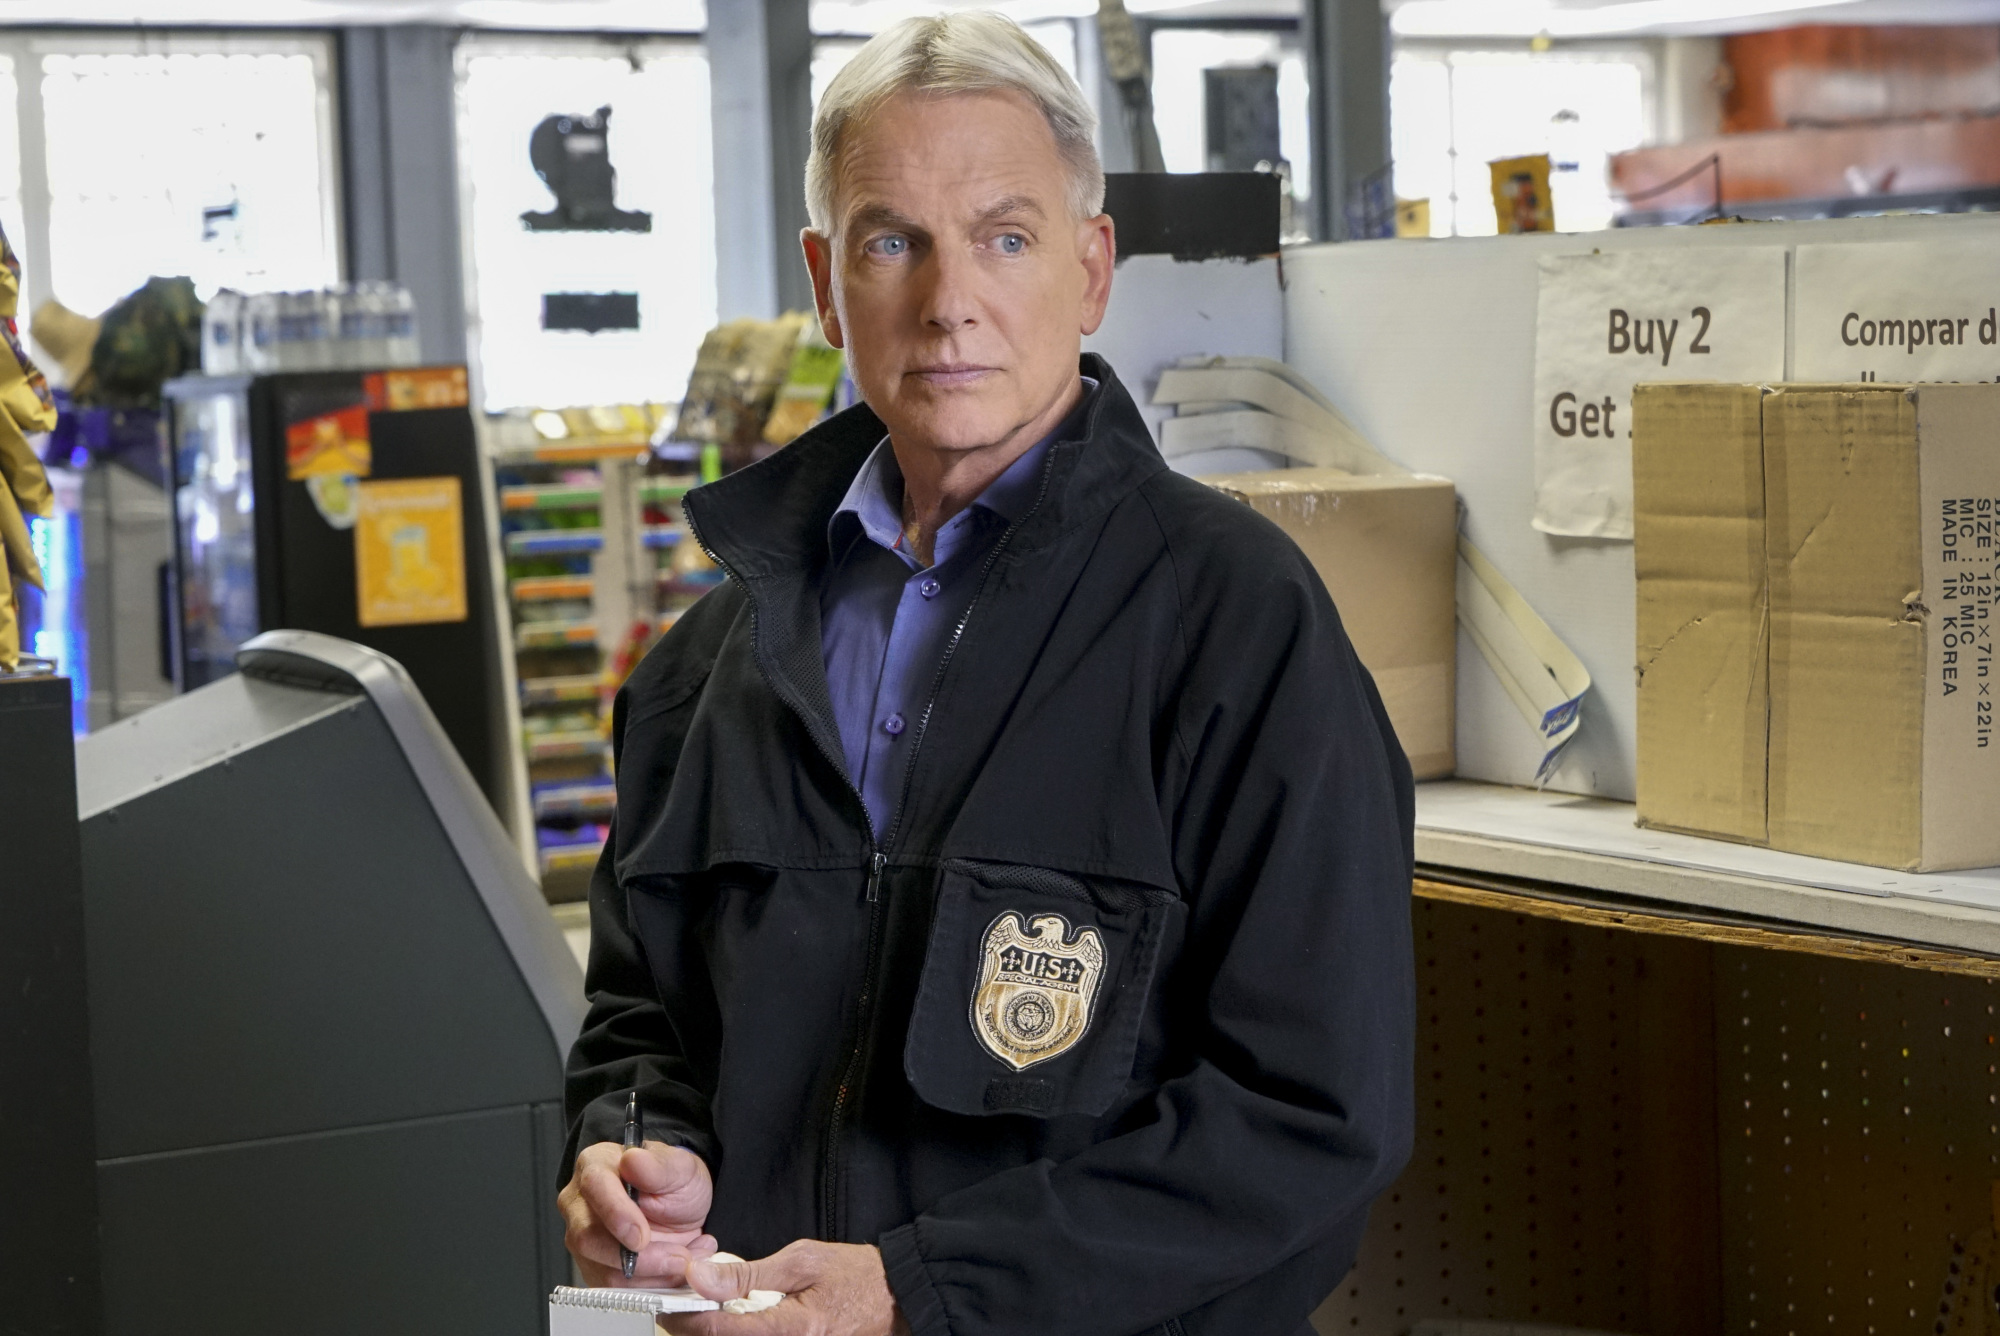 Mark Harmon Isnt Leaving Ncis But His Role On The Show Could